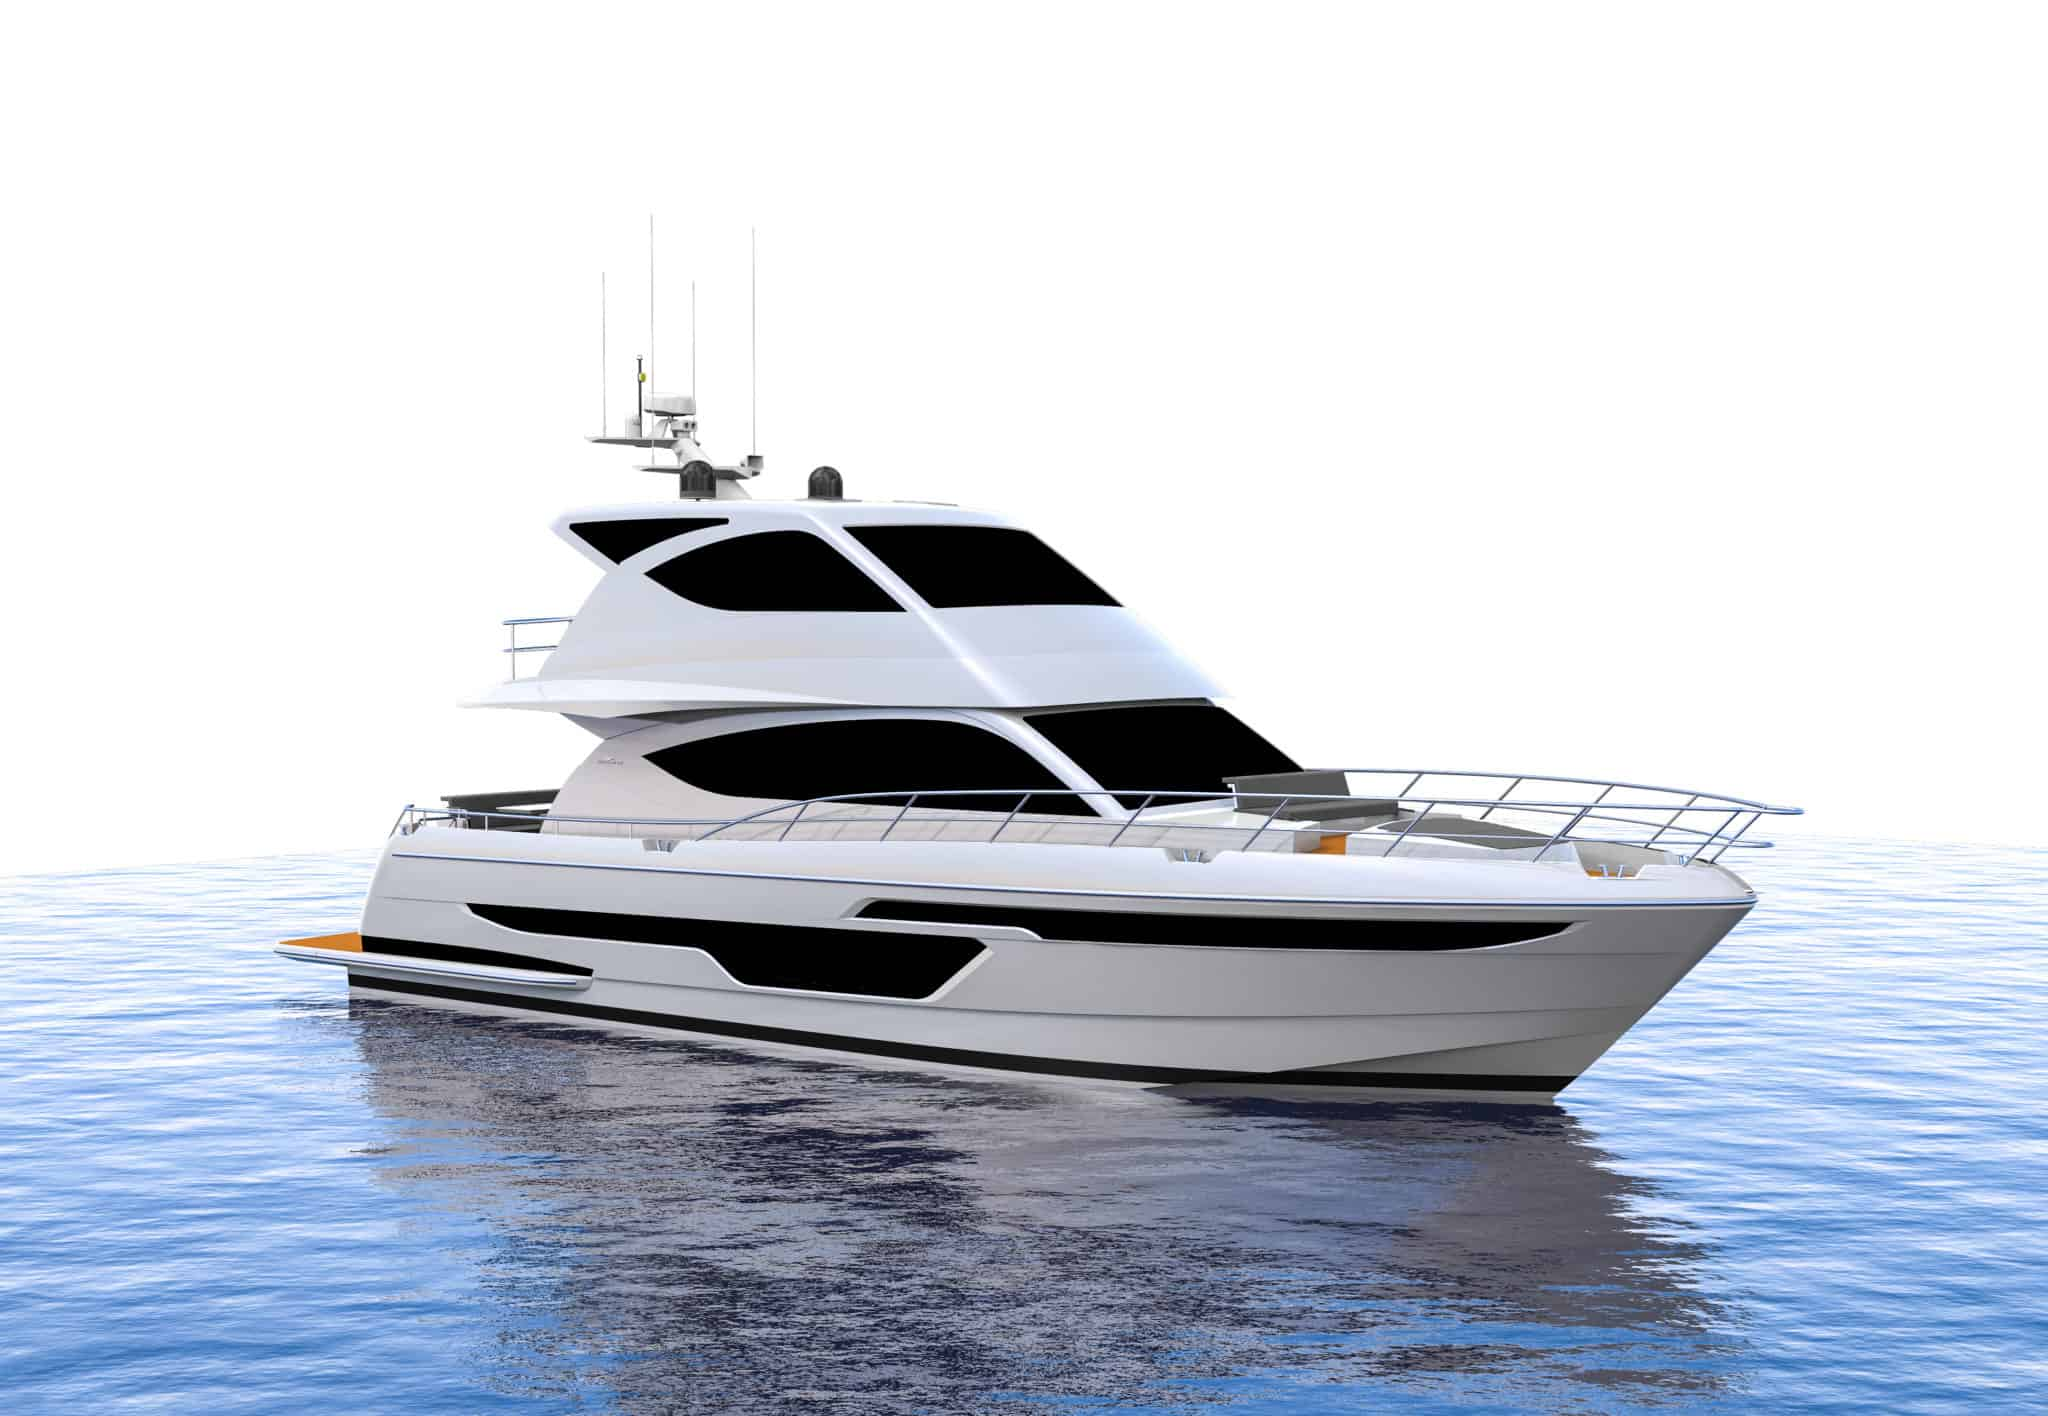 Initial render of the 6000 Flybridge from front angle